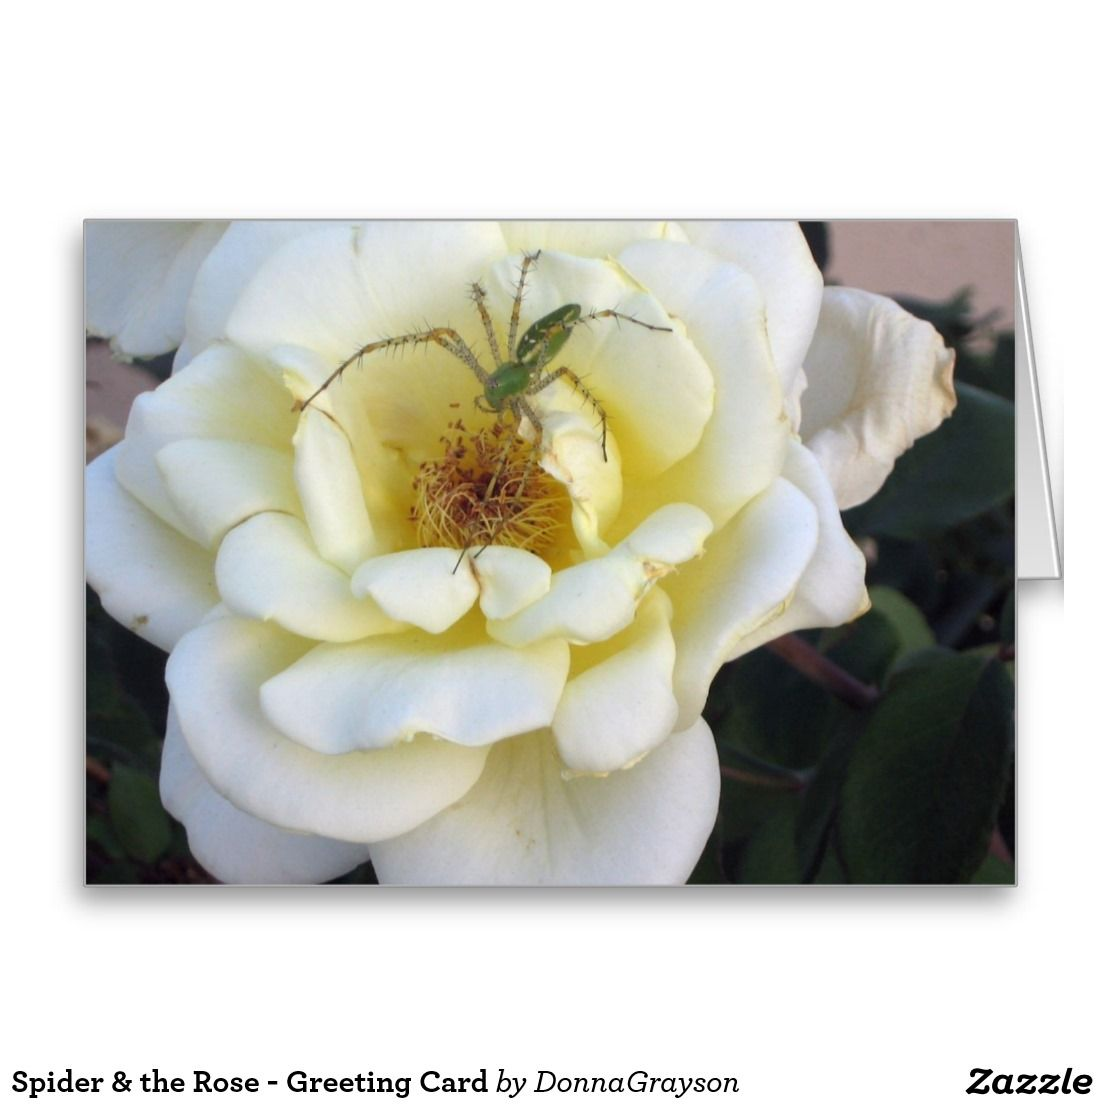 Spider the rose greeting card flowers and nature scenes spider the rose greeting card m4hsunfo